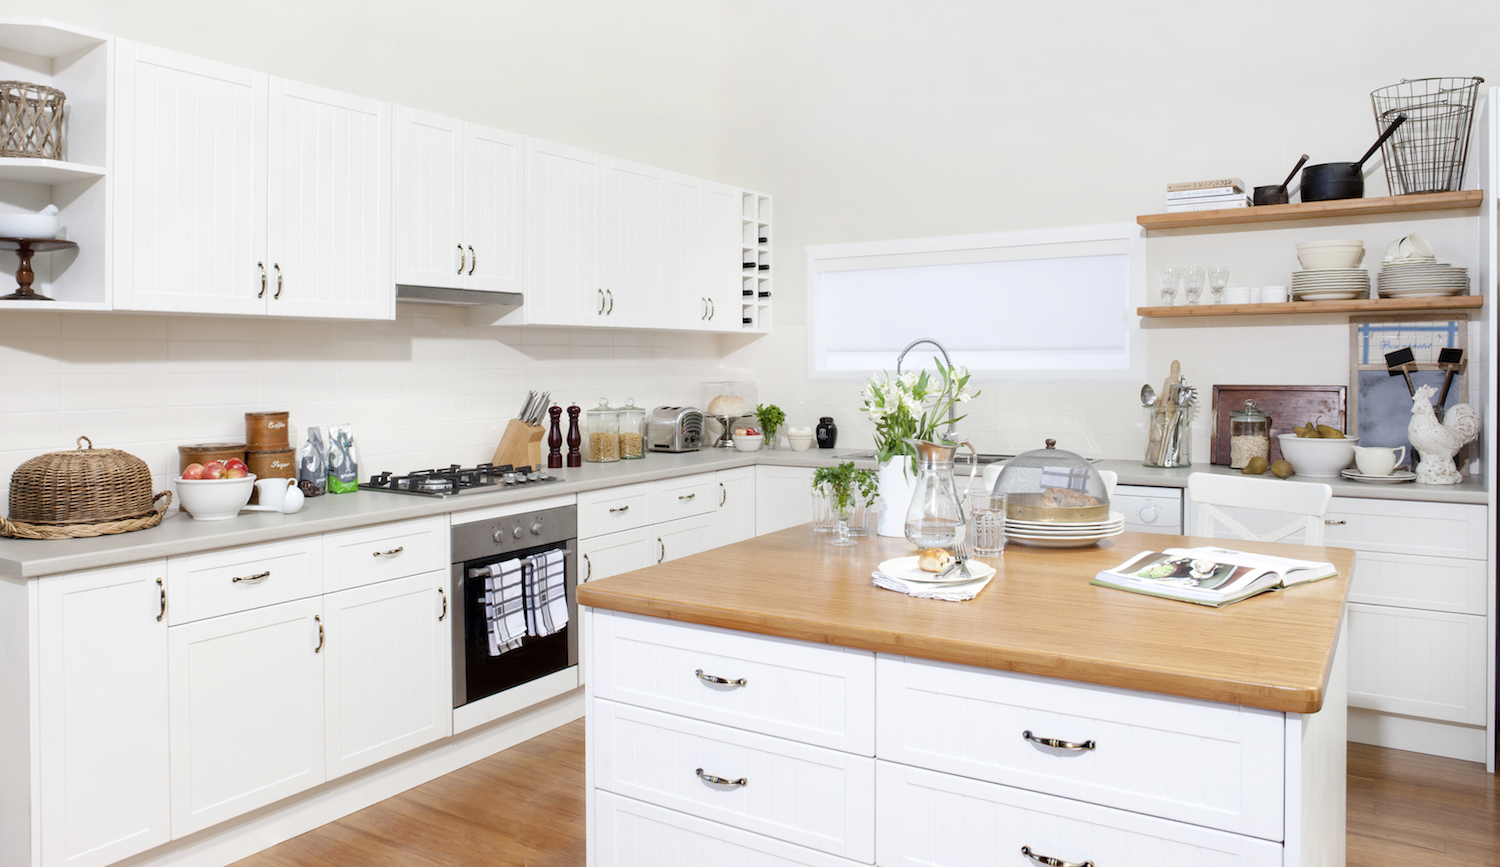 Genuine Inspiration Kaboodle Kitchen Country Kitchen Designs Photo Gallery French Country Kitchen Designs Photo Gallery City Meets Country City Meets Country Kitchen Ideas kitchen Country Kitchen Designs Photo Gallery